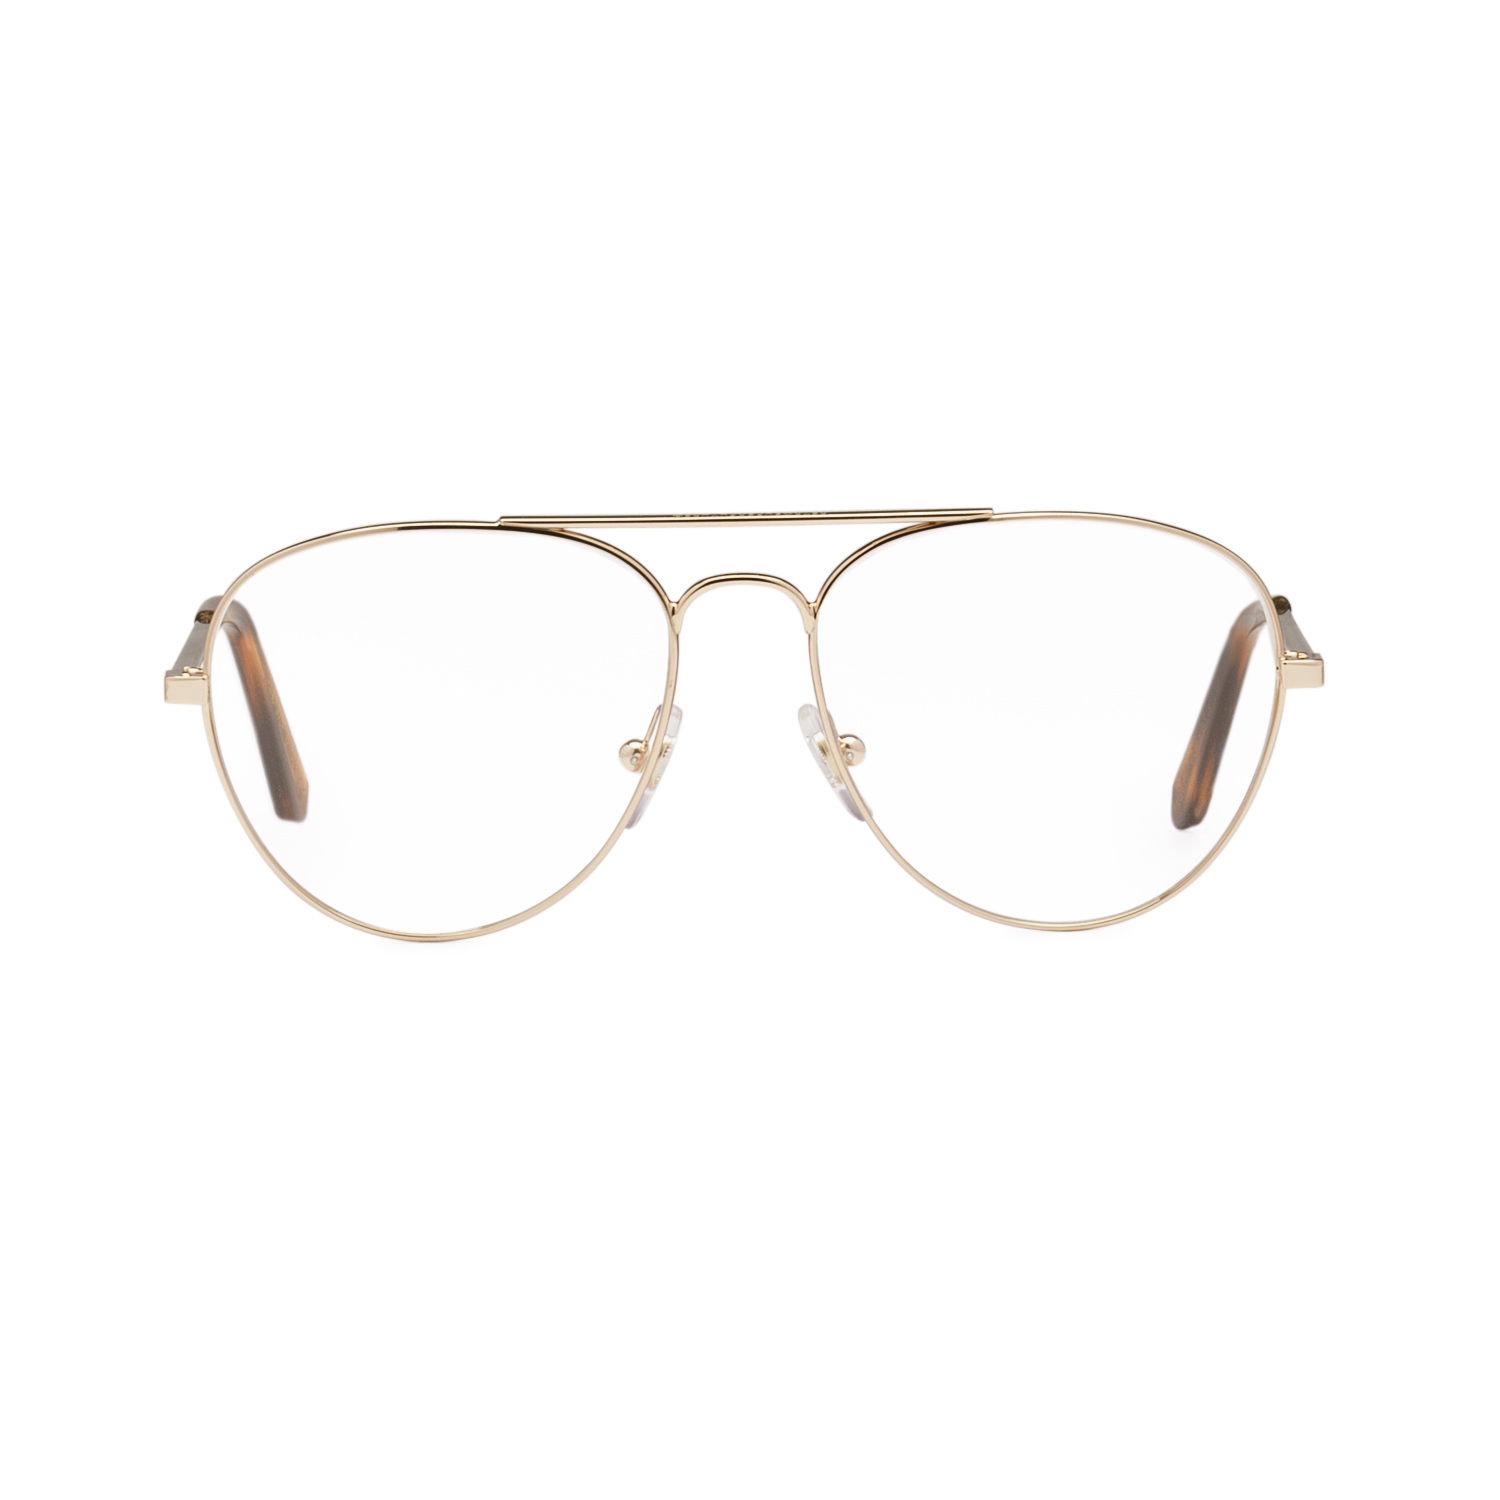 Super Numero 09 Eyeglasses by RETROSUPERFUTURE OBP Oro ...